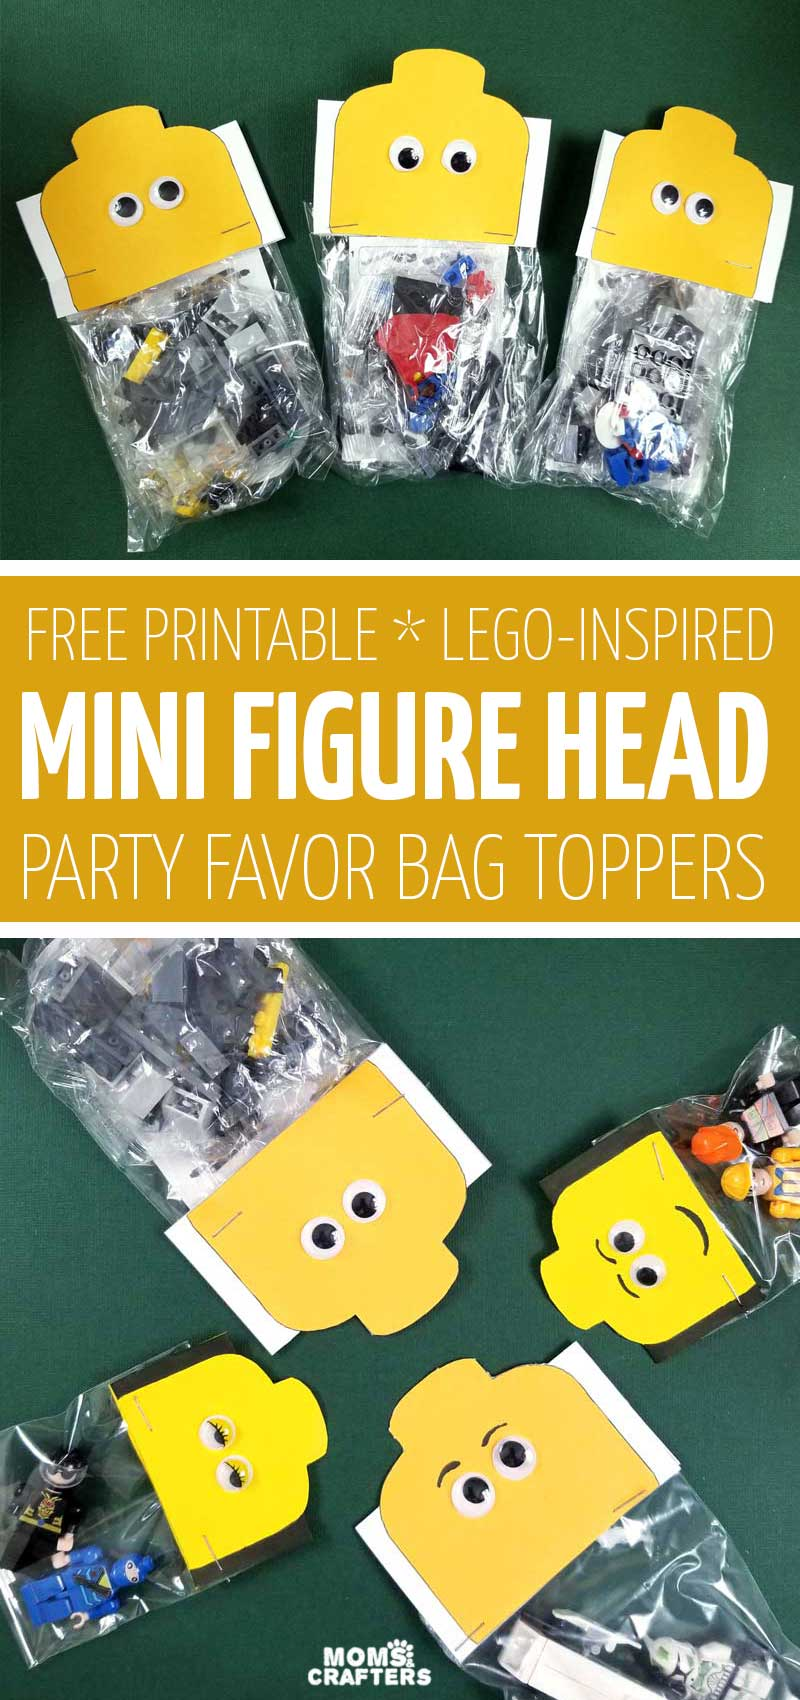 Click For Some Free Printable LEGO Inspired Favor Bags Toppers